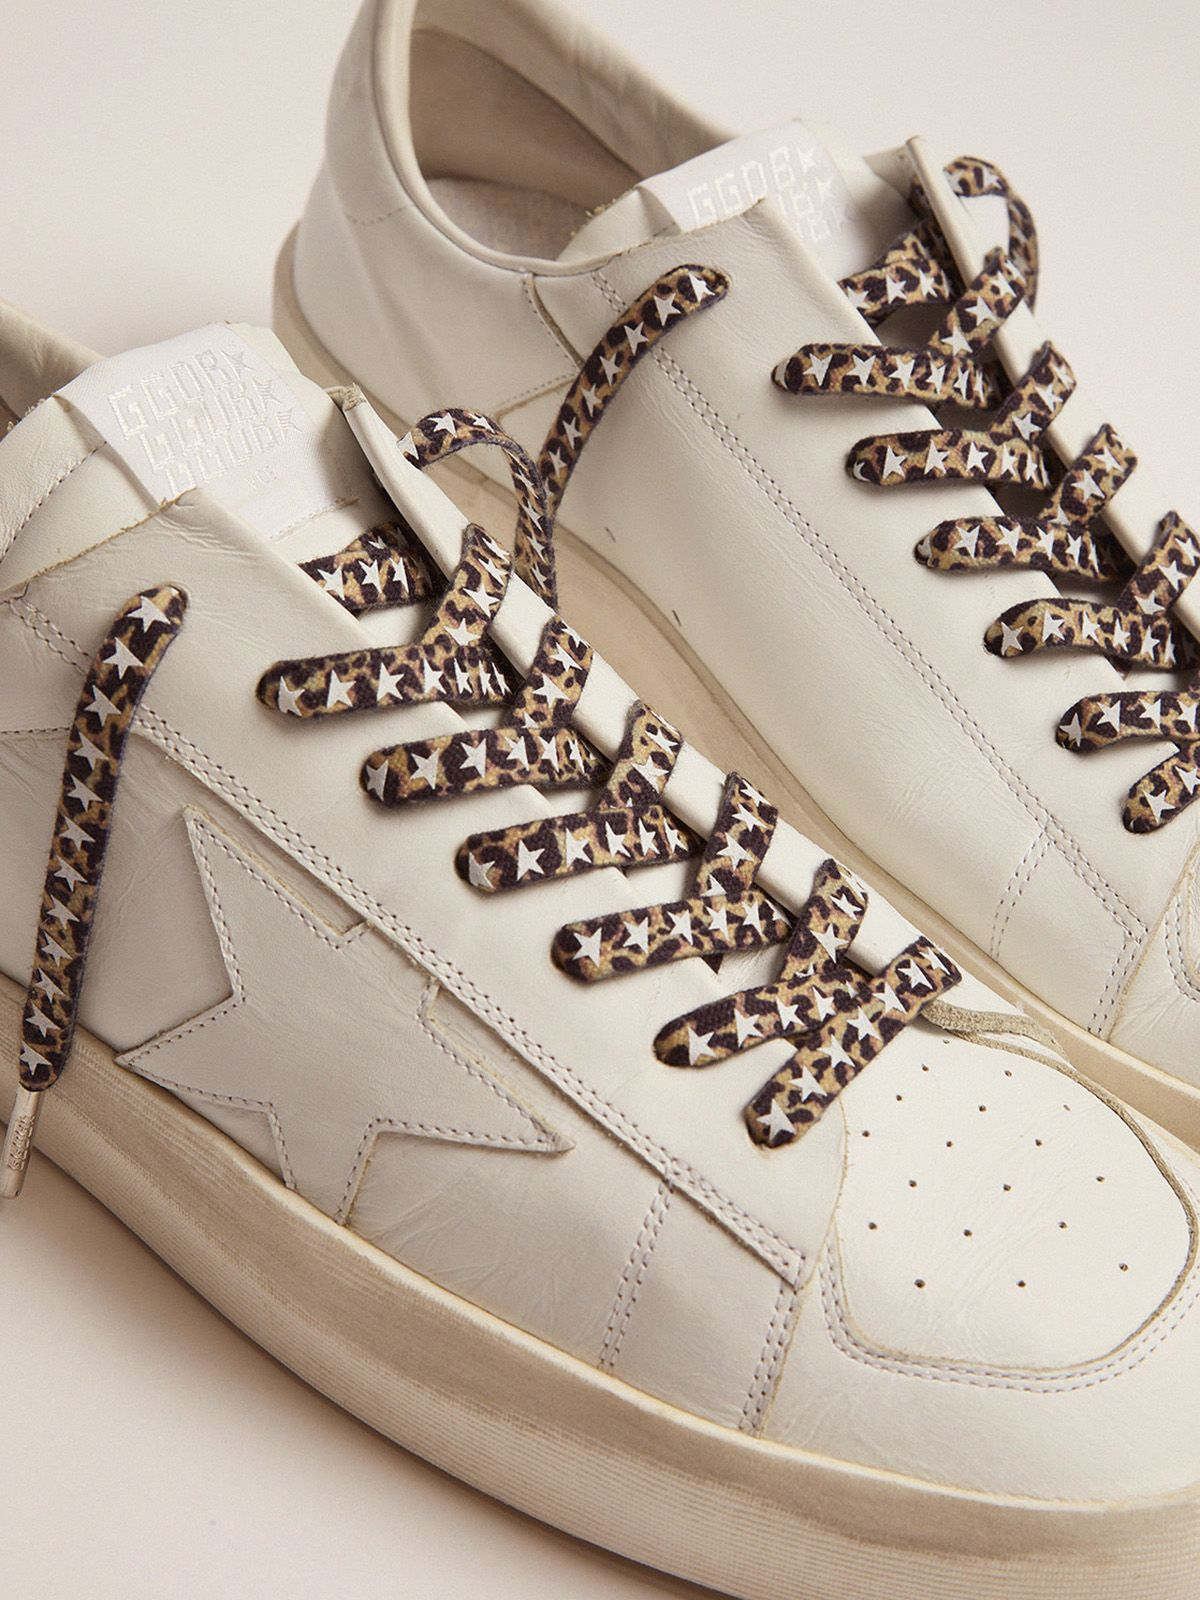 Golden Goose - Men's leopard-print laces with white stars in